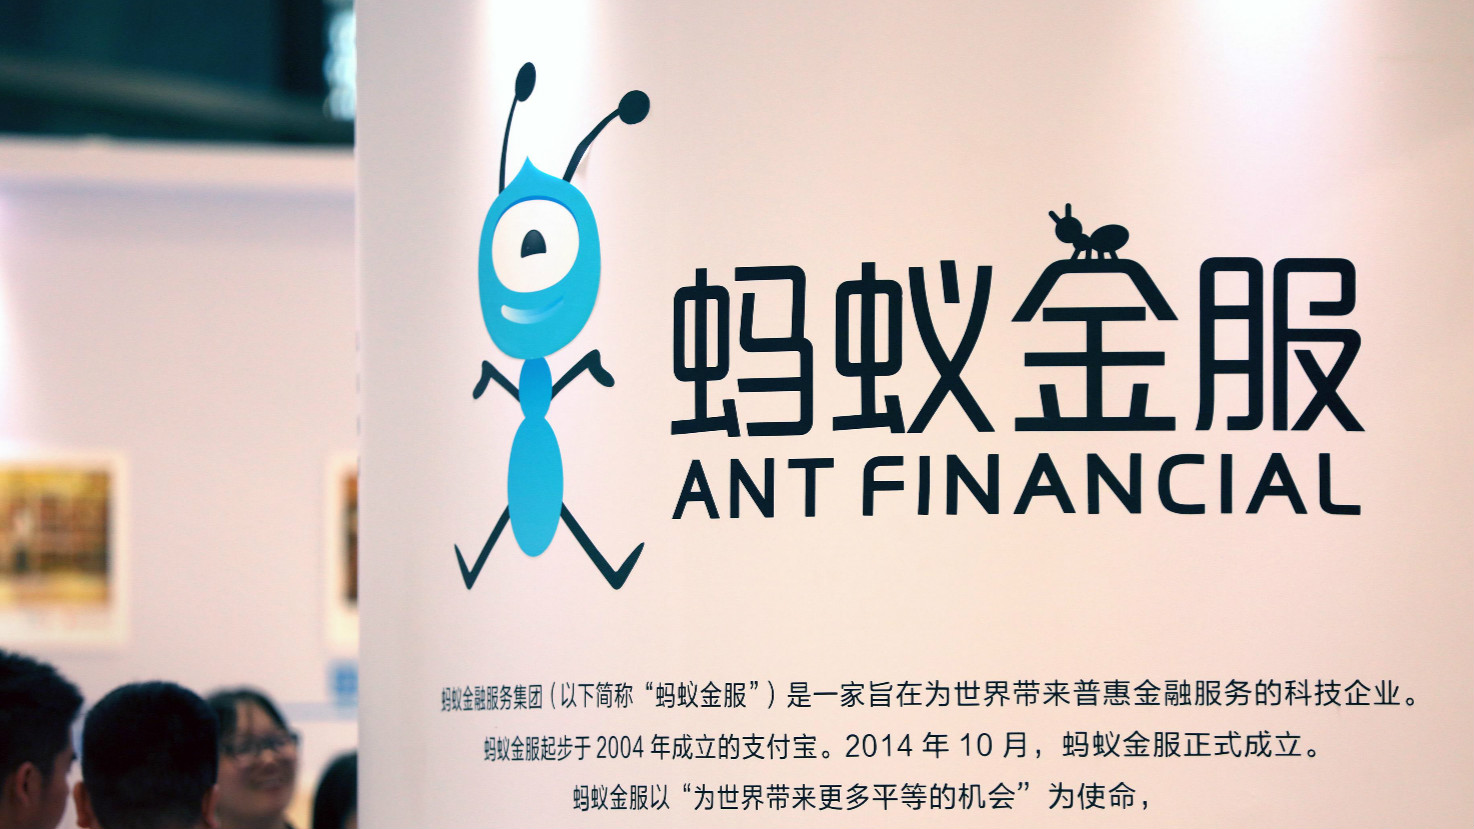 Ant Financial partners with China Everbright Bank and